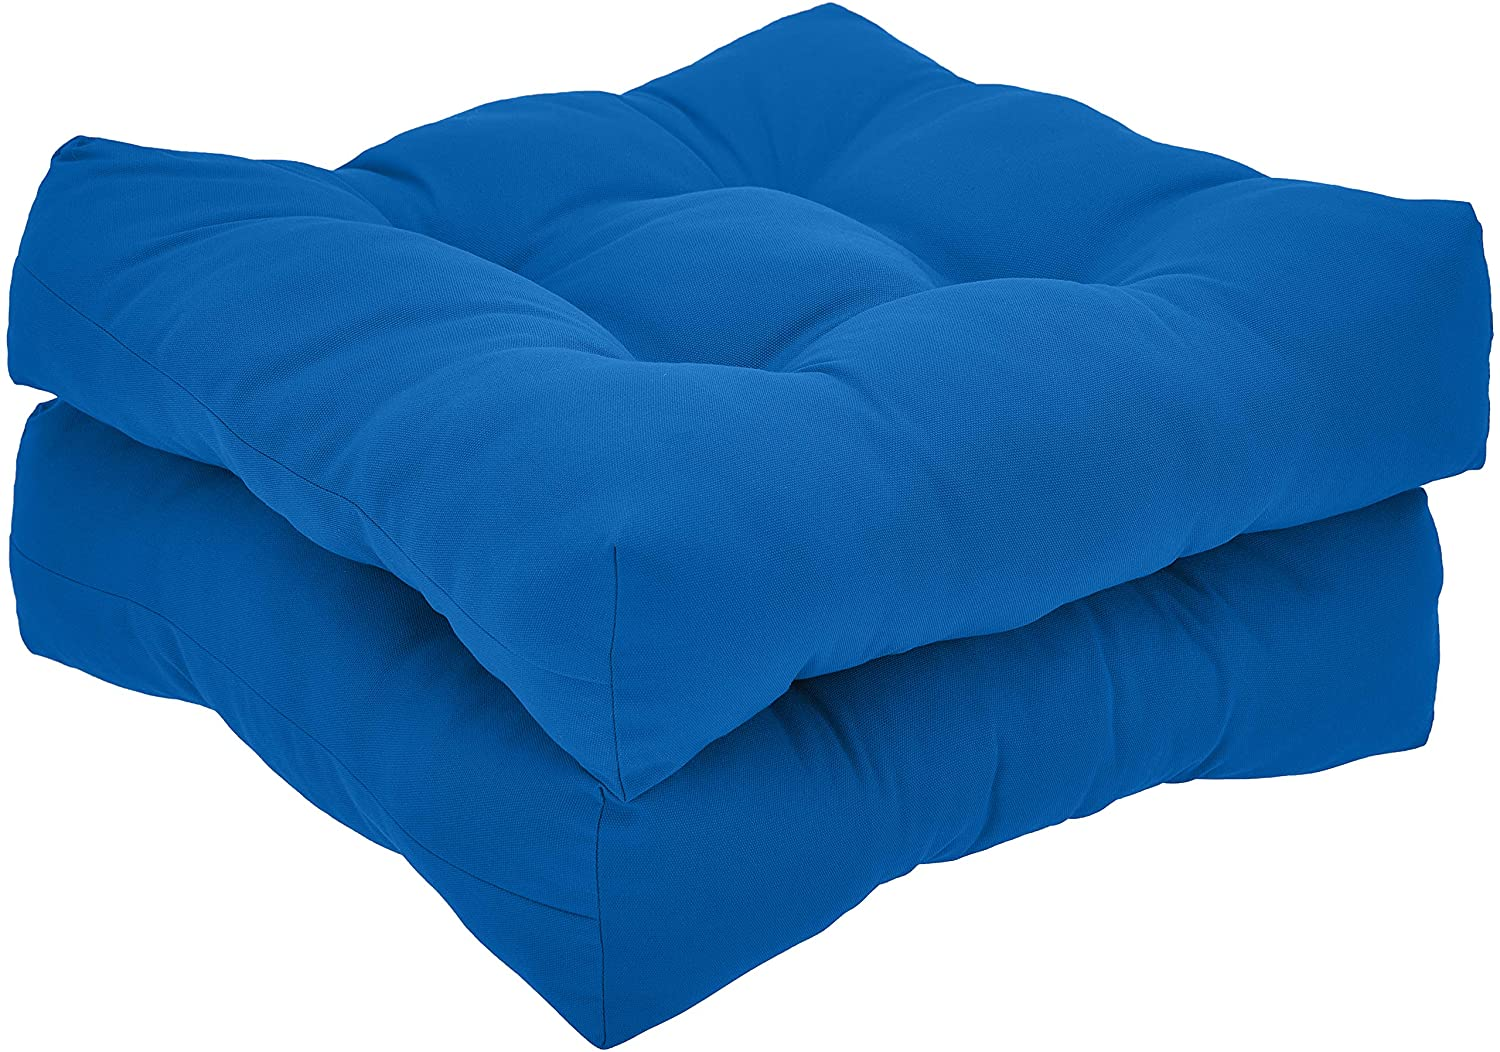 AmazonBasics Tufted Outdoor Seat Patio Cushion - Pack of 2, 19 x 19 x 5 Inches, Blue